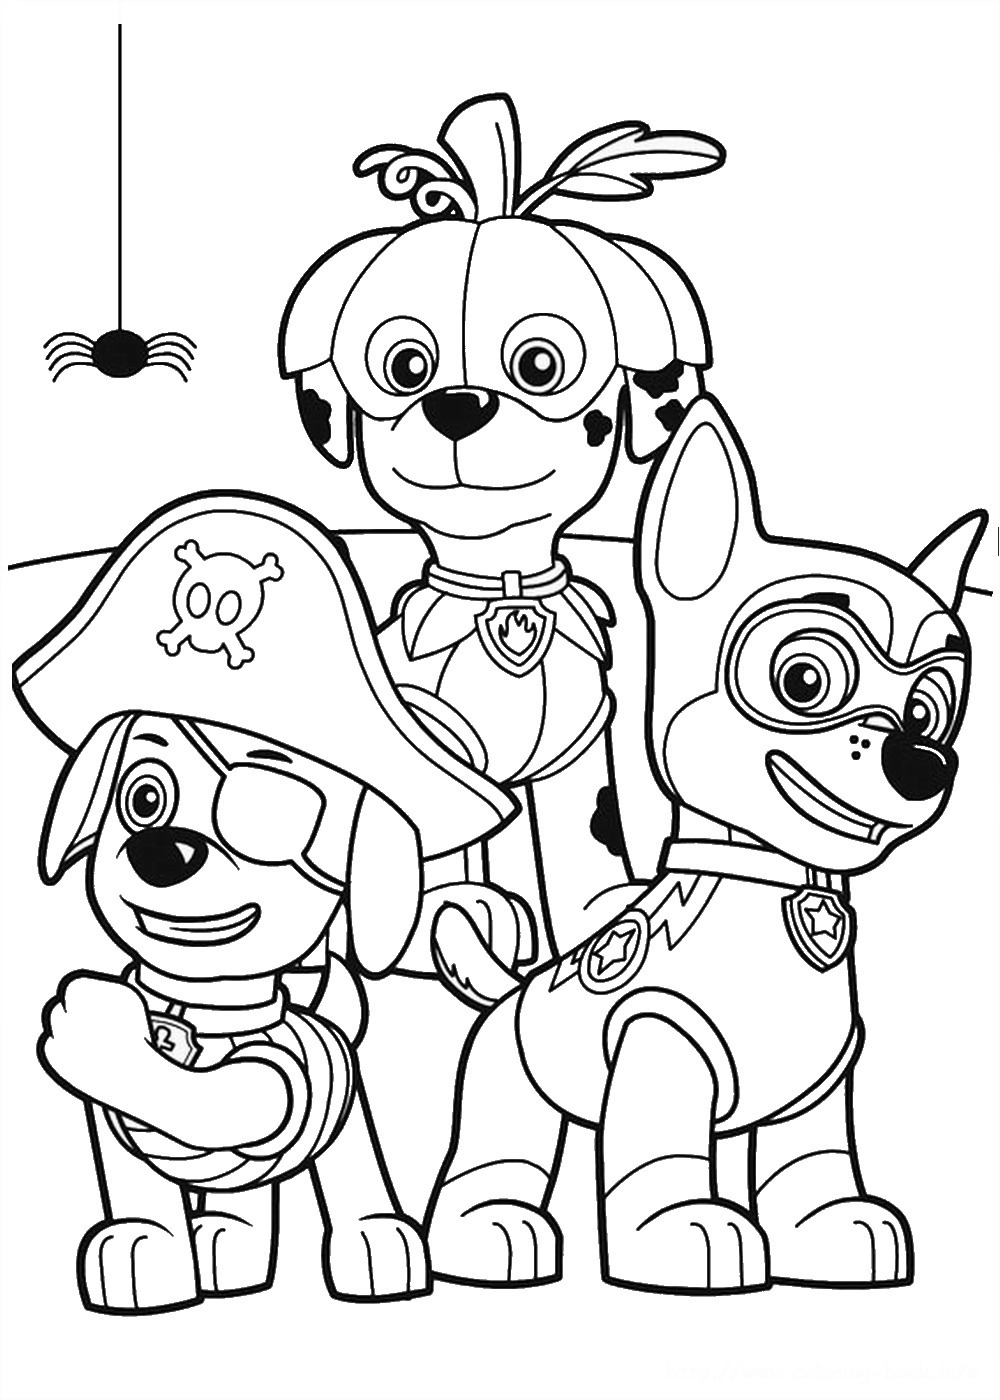 Free Nick Jr Paw Patrol Coloring Pages Nick Junior Coloring Pages